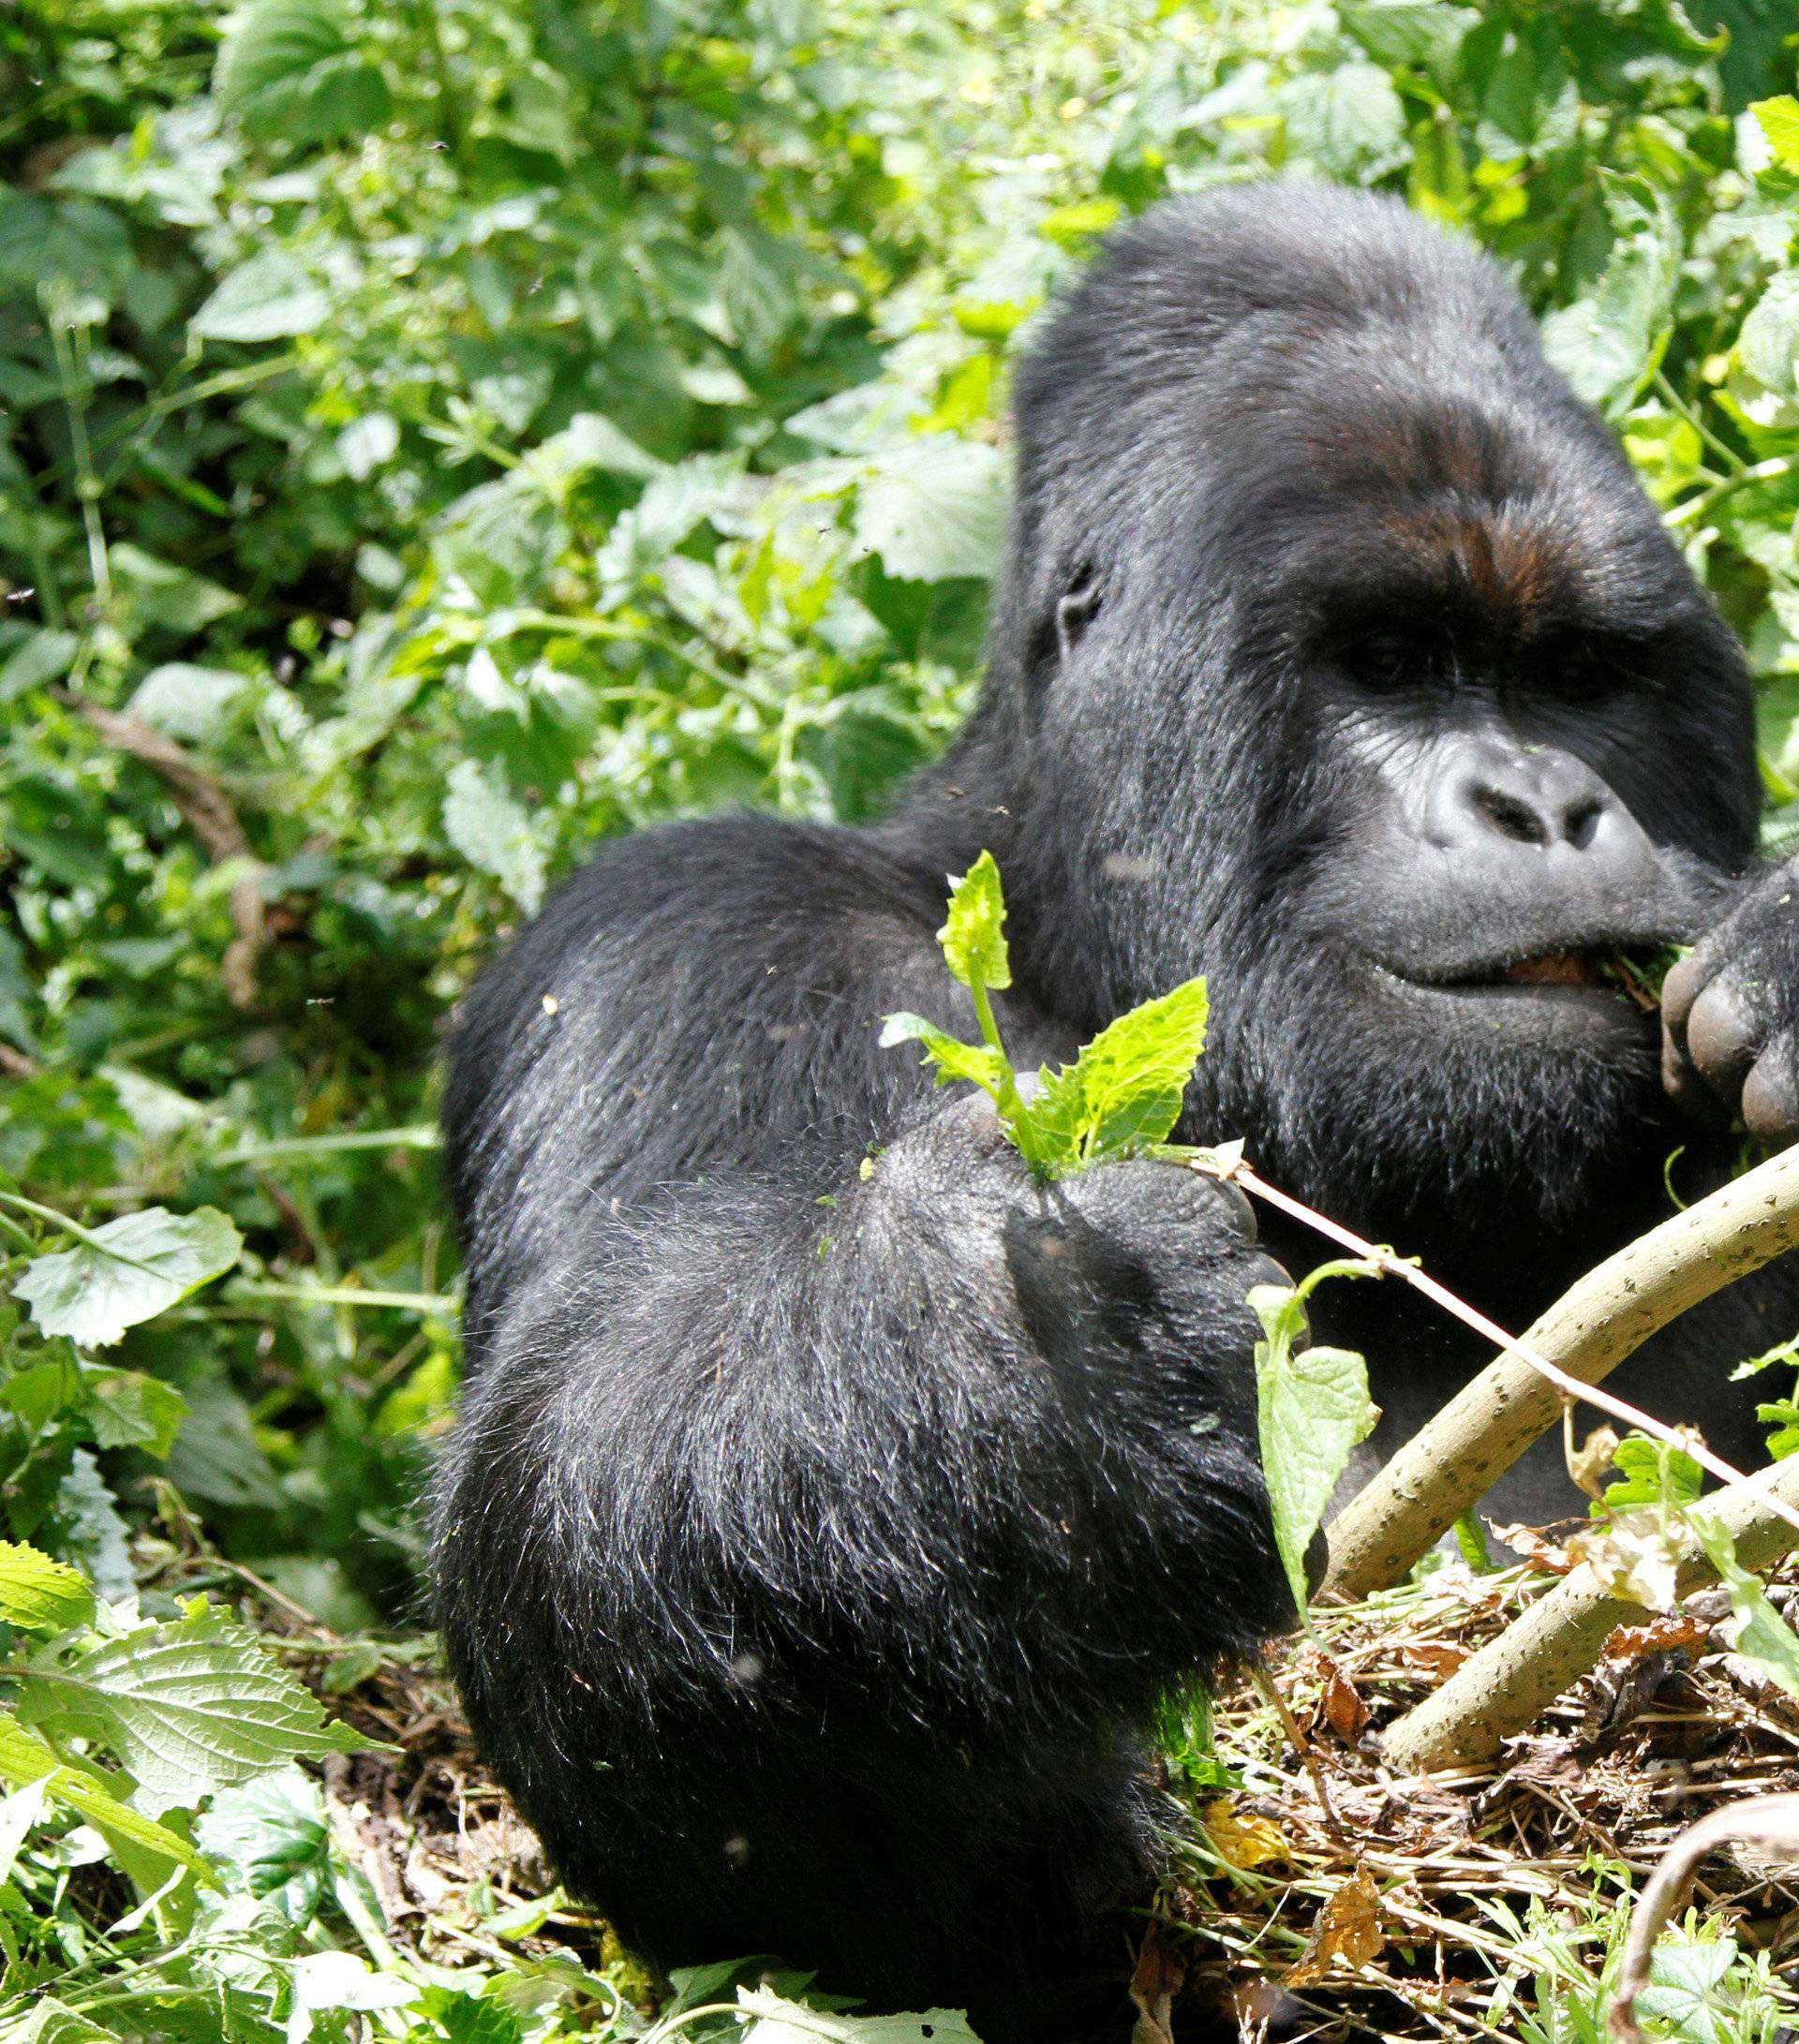 An endangered silverback mountain gorilla from the Nyakamwe-Bihango family feeds within the forest in Virunga national park near Goma